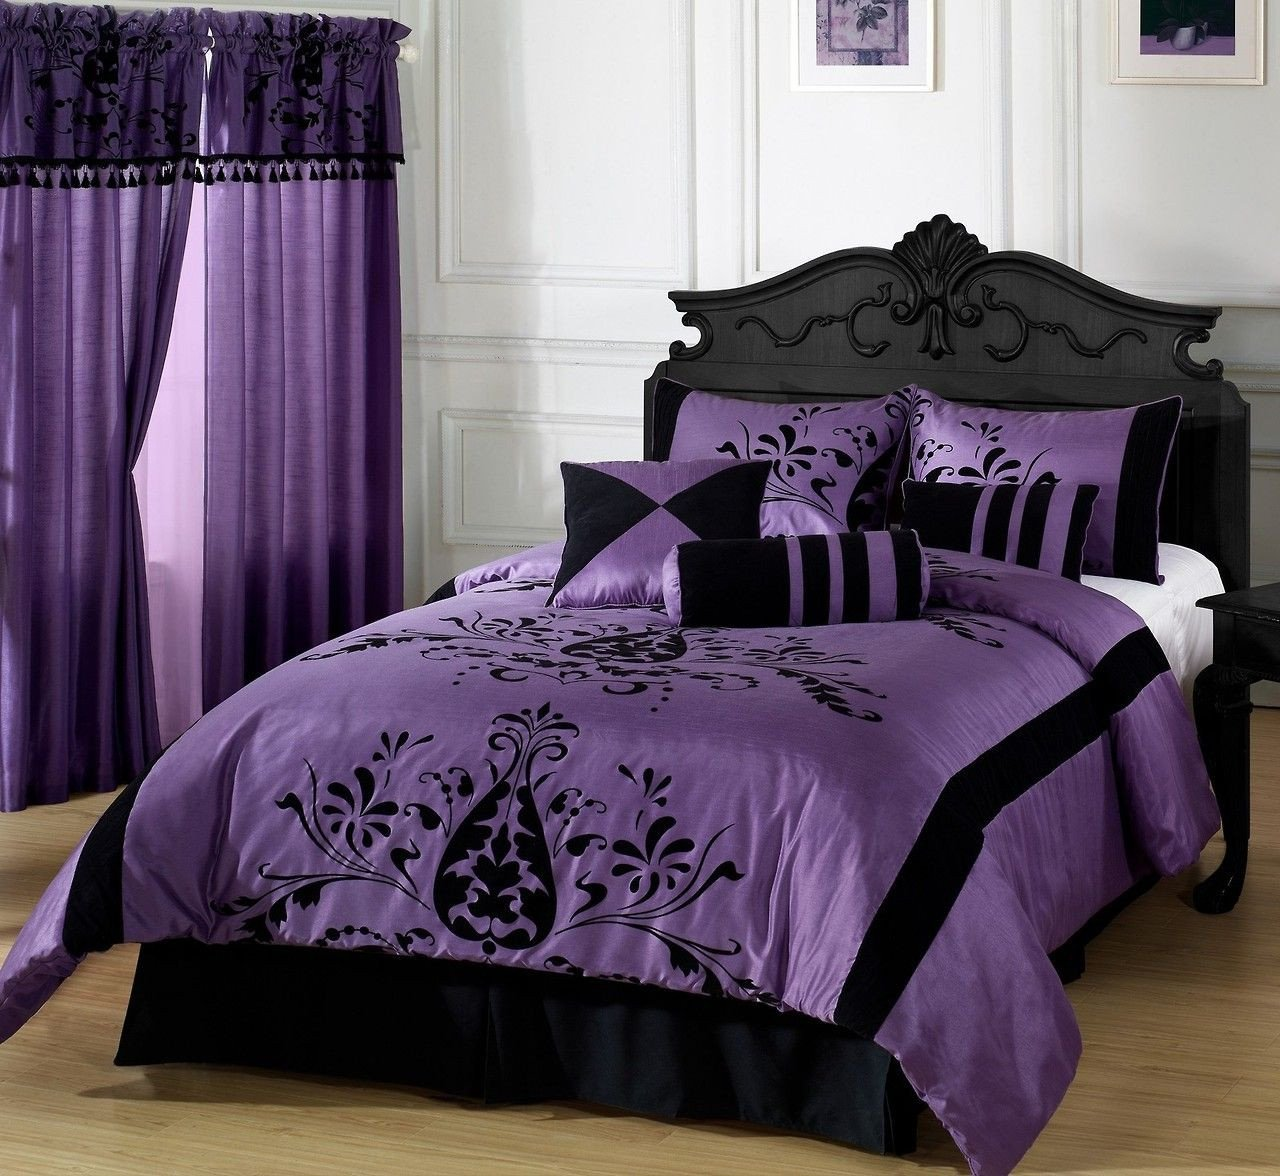 Gothic Bedroom Furniture for Sale Lovely Goth Gothic Gothic Decor Purple and Black E Headboard